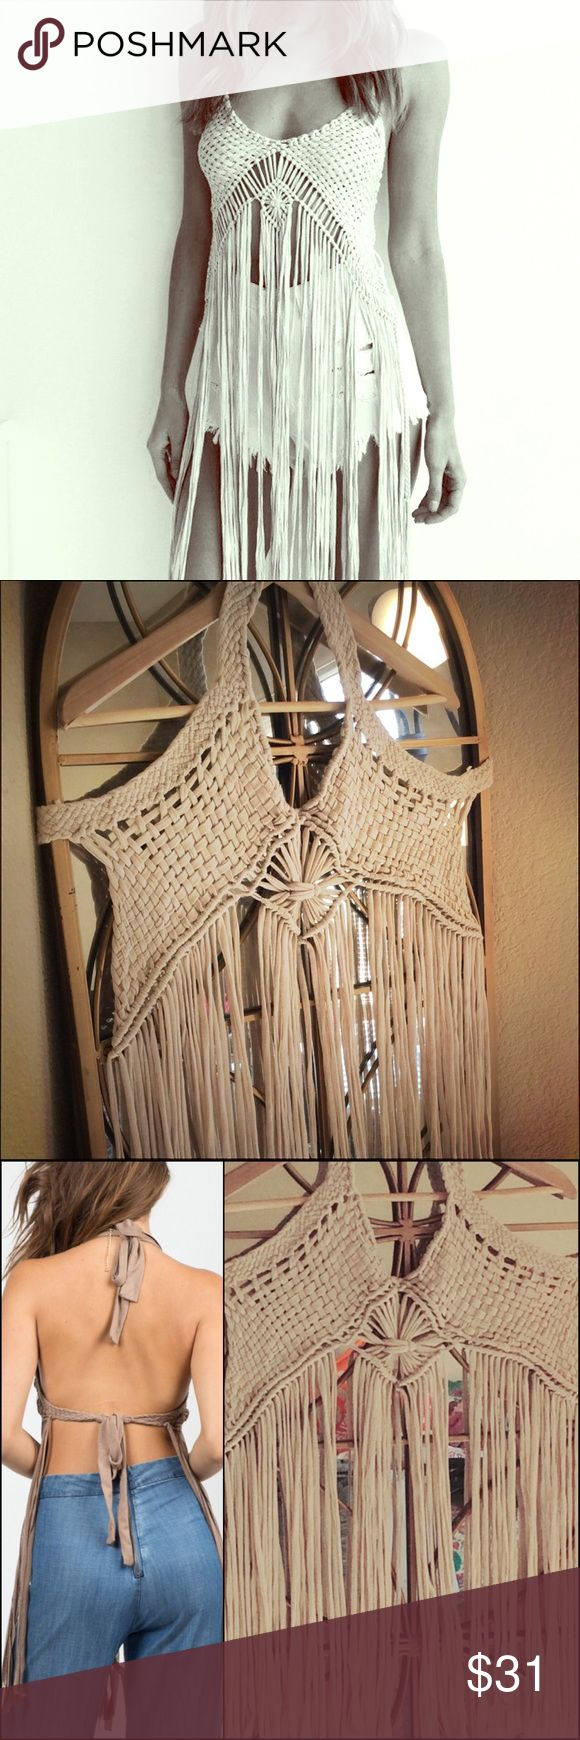 Macrame crochet hippie fringe halter top m / L Like New. Beautiful macrame braided halter top. Ties at neck and back. Crochet like top with long fringe. Fits M/L. Tops